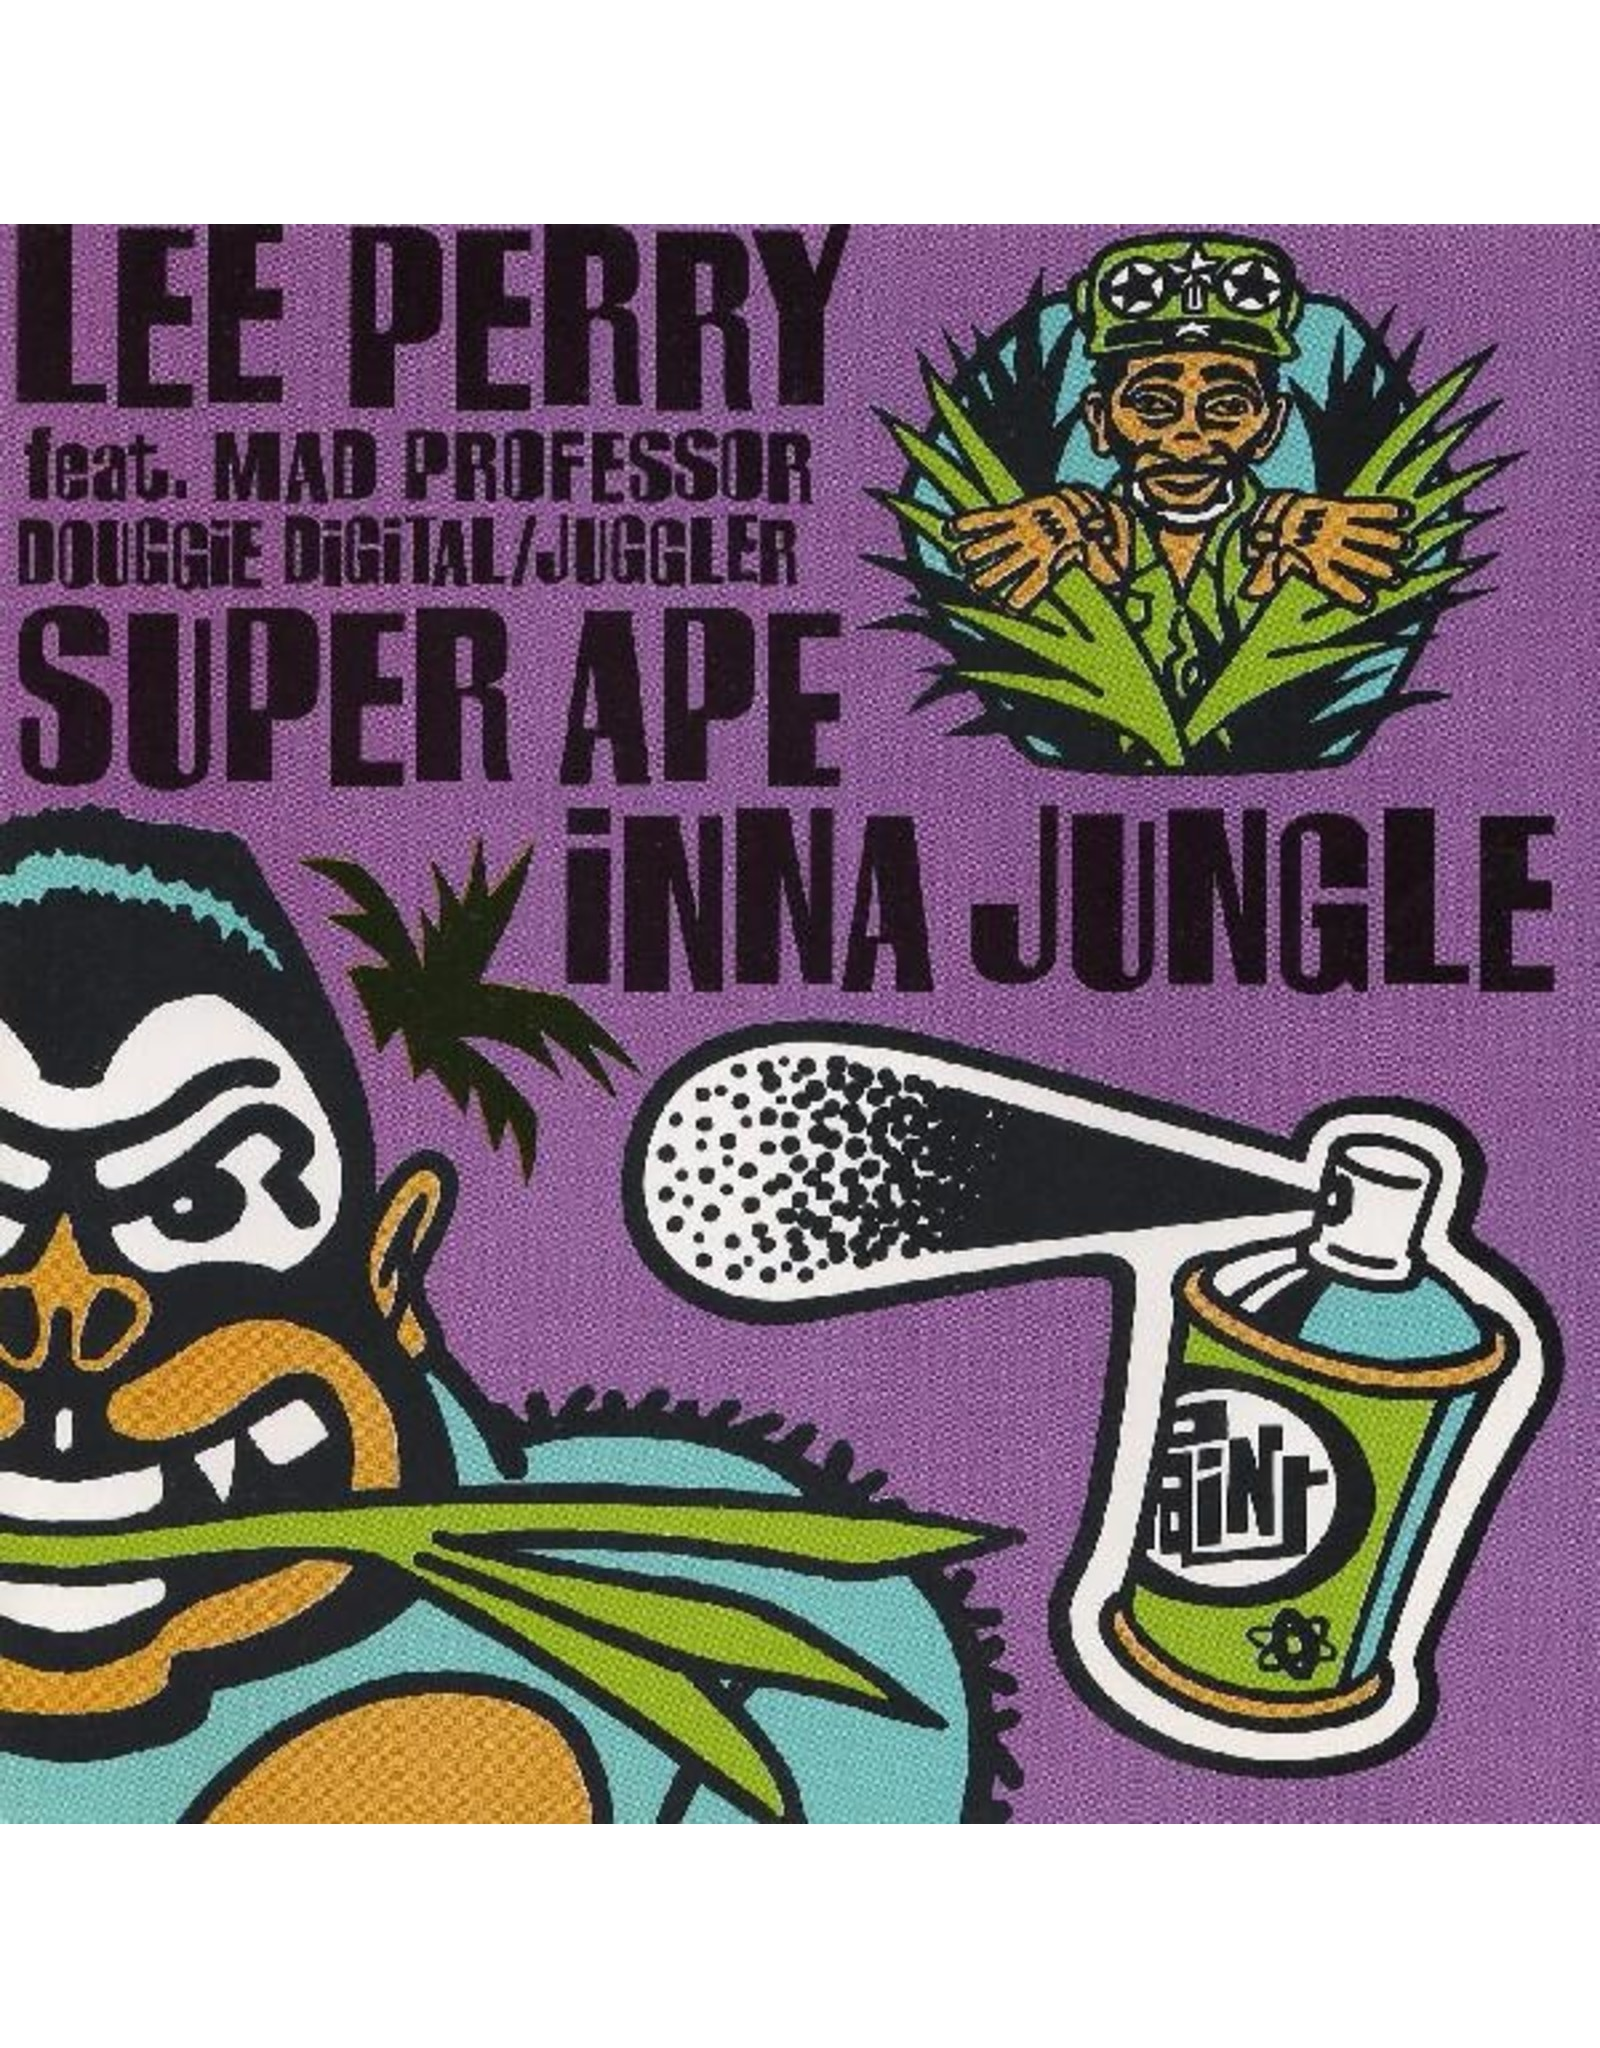 New Vinyl Lee 'Scratch' Perry ft. Mad Professor / Douggie Digital / Juggler - Super Ape Inna Jungle LP